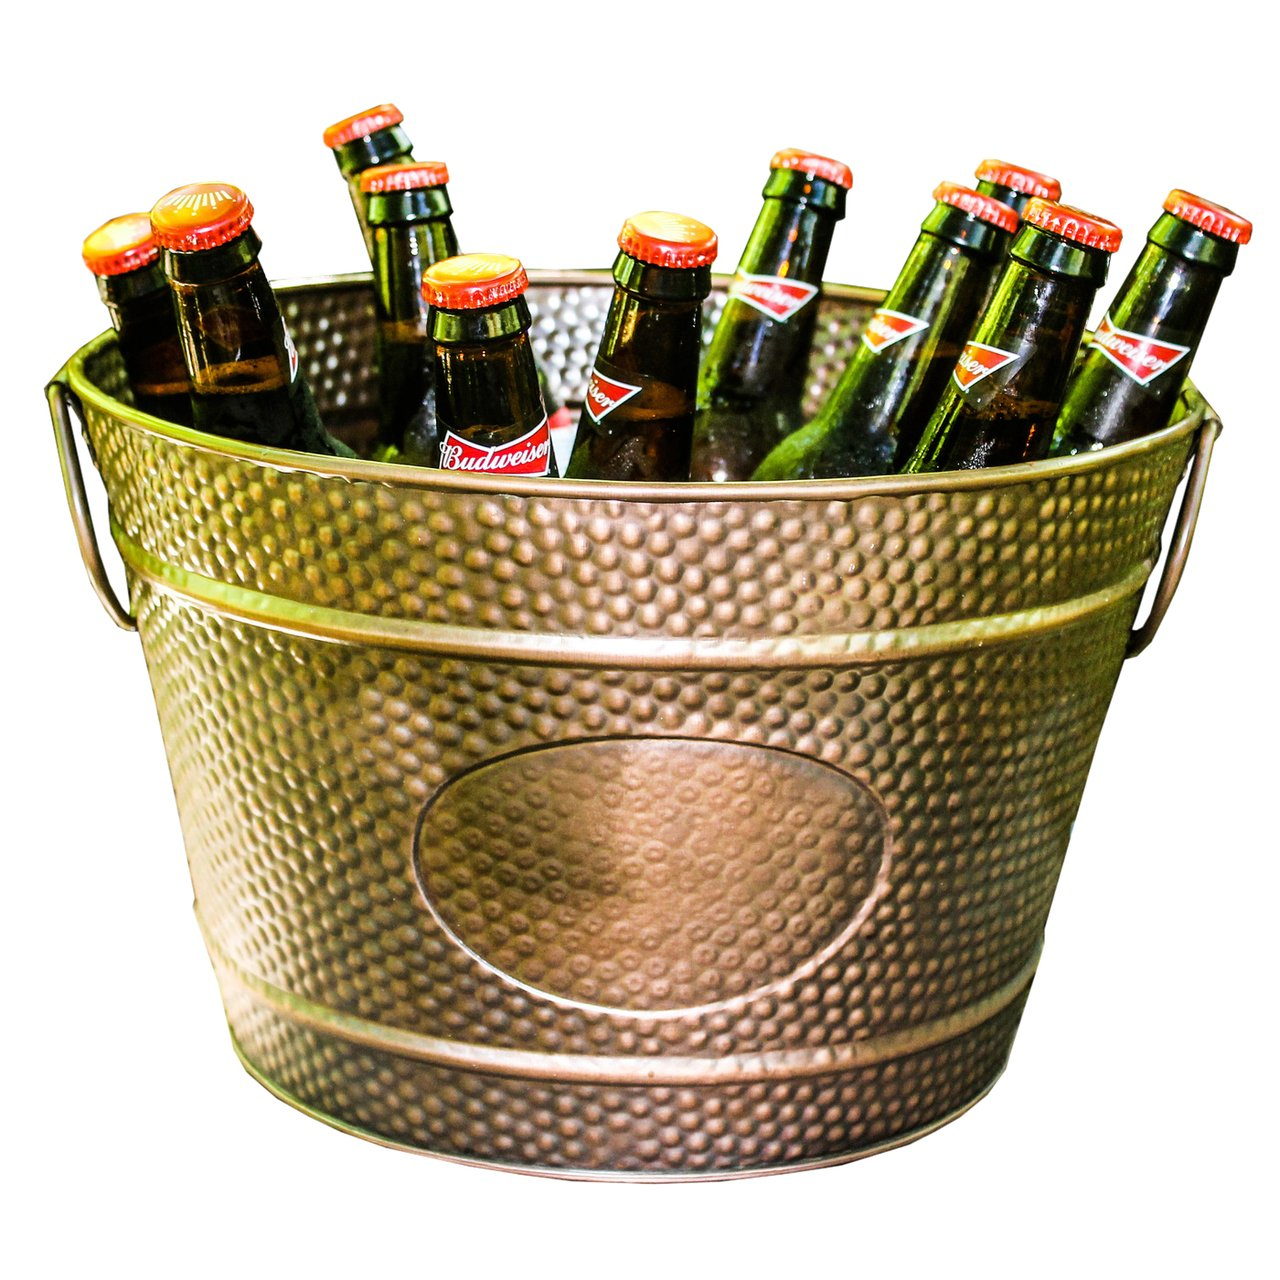 BREKX Hillcrest Bronze Pebbled Galvanized Beverage Tub Wine Bucket & Planter, Medium 0